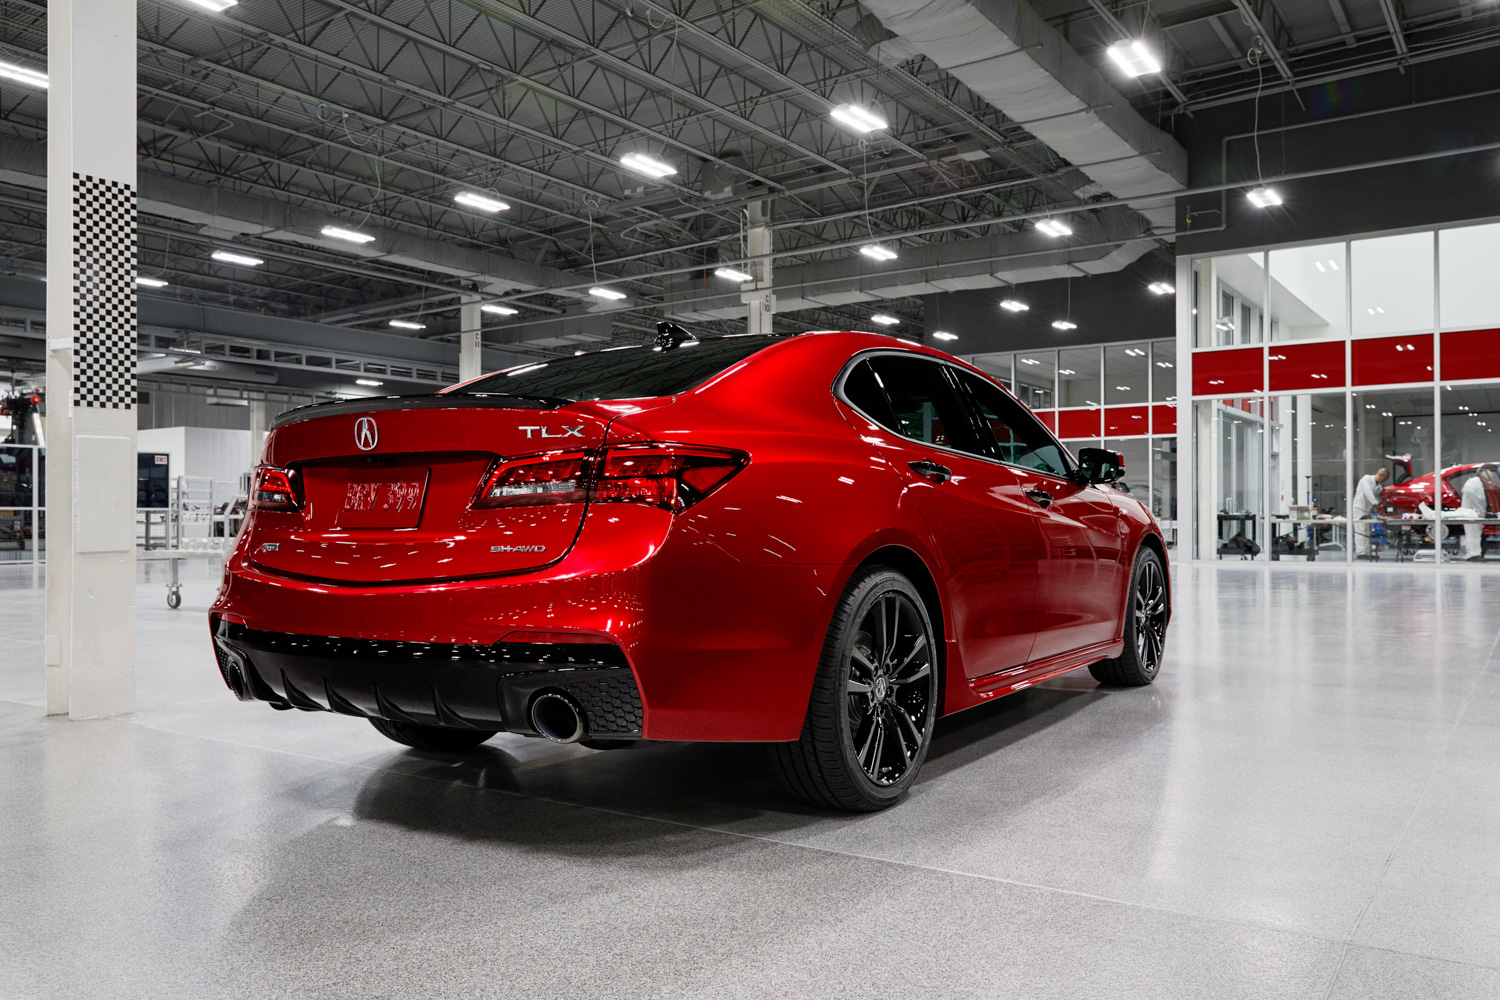 2020 Acura TLX PMC Edition 3/4 rear